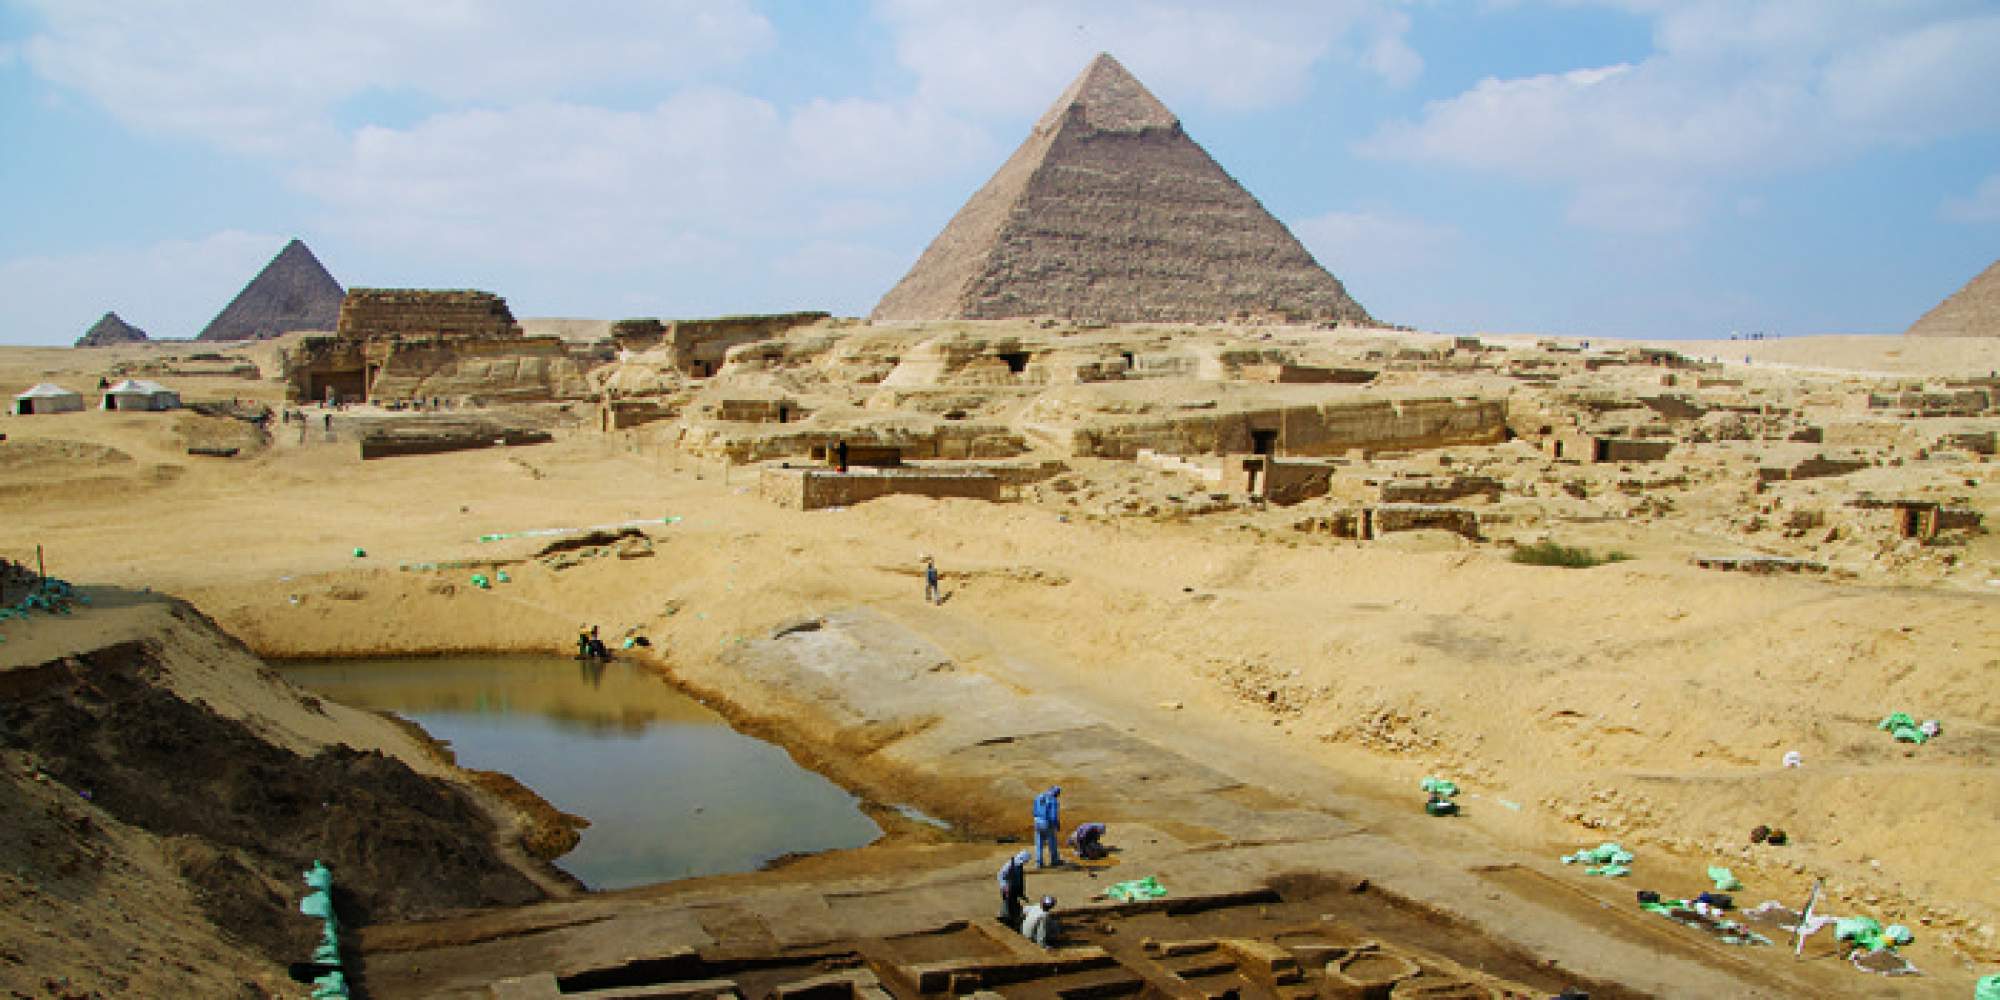 Giza Egypt  City new picture : Ruins Of Bustling Port, Barracks Unearthed Near Giza Pyramids In Egypt